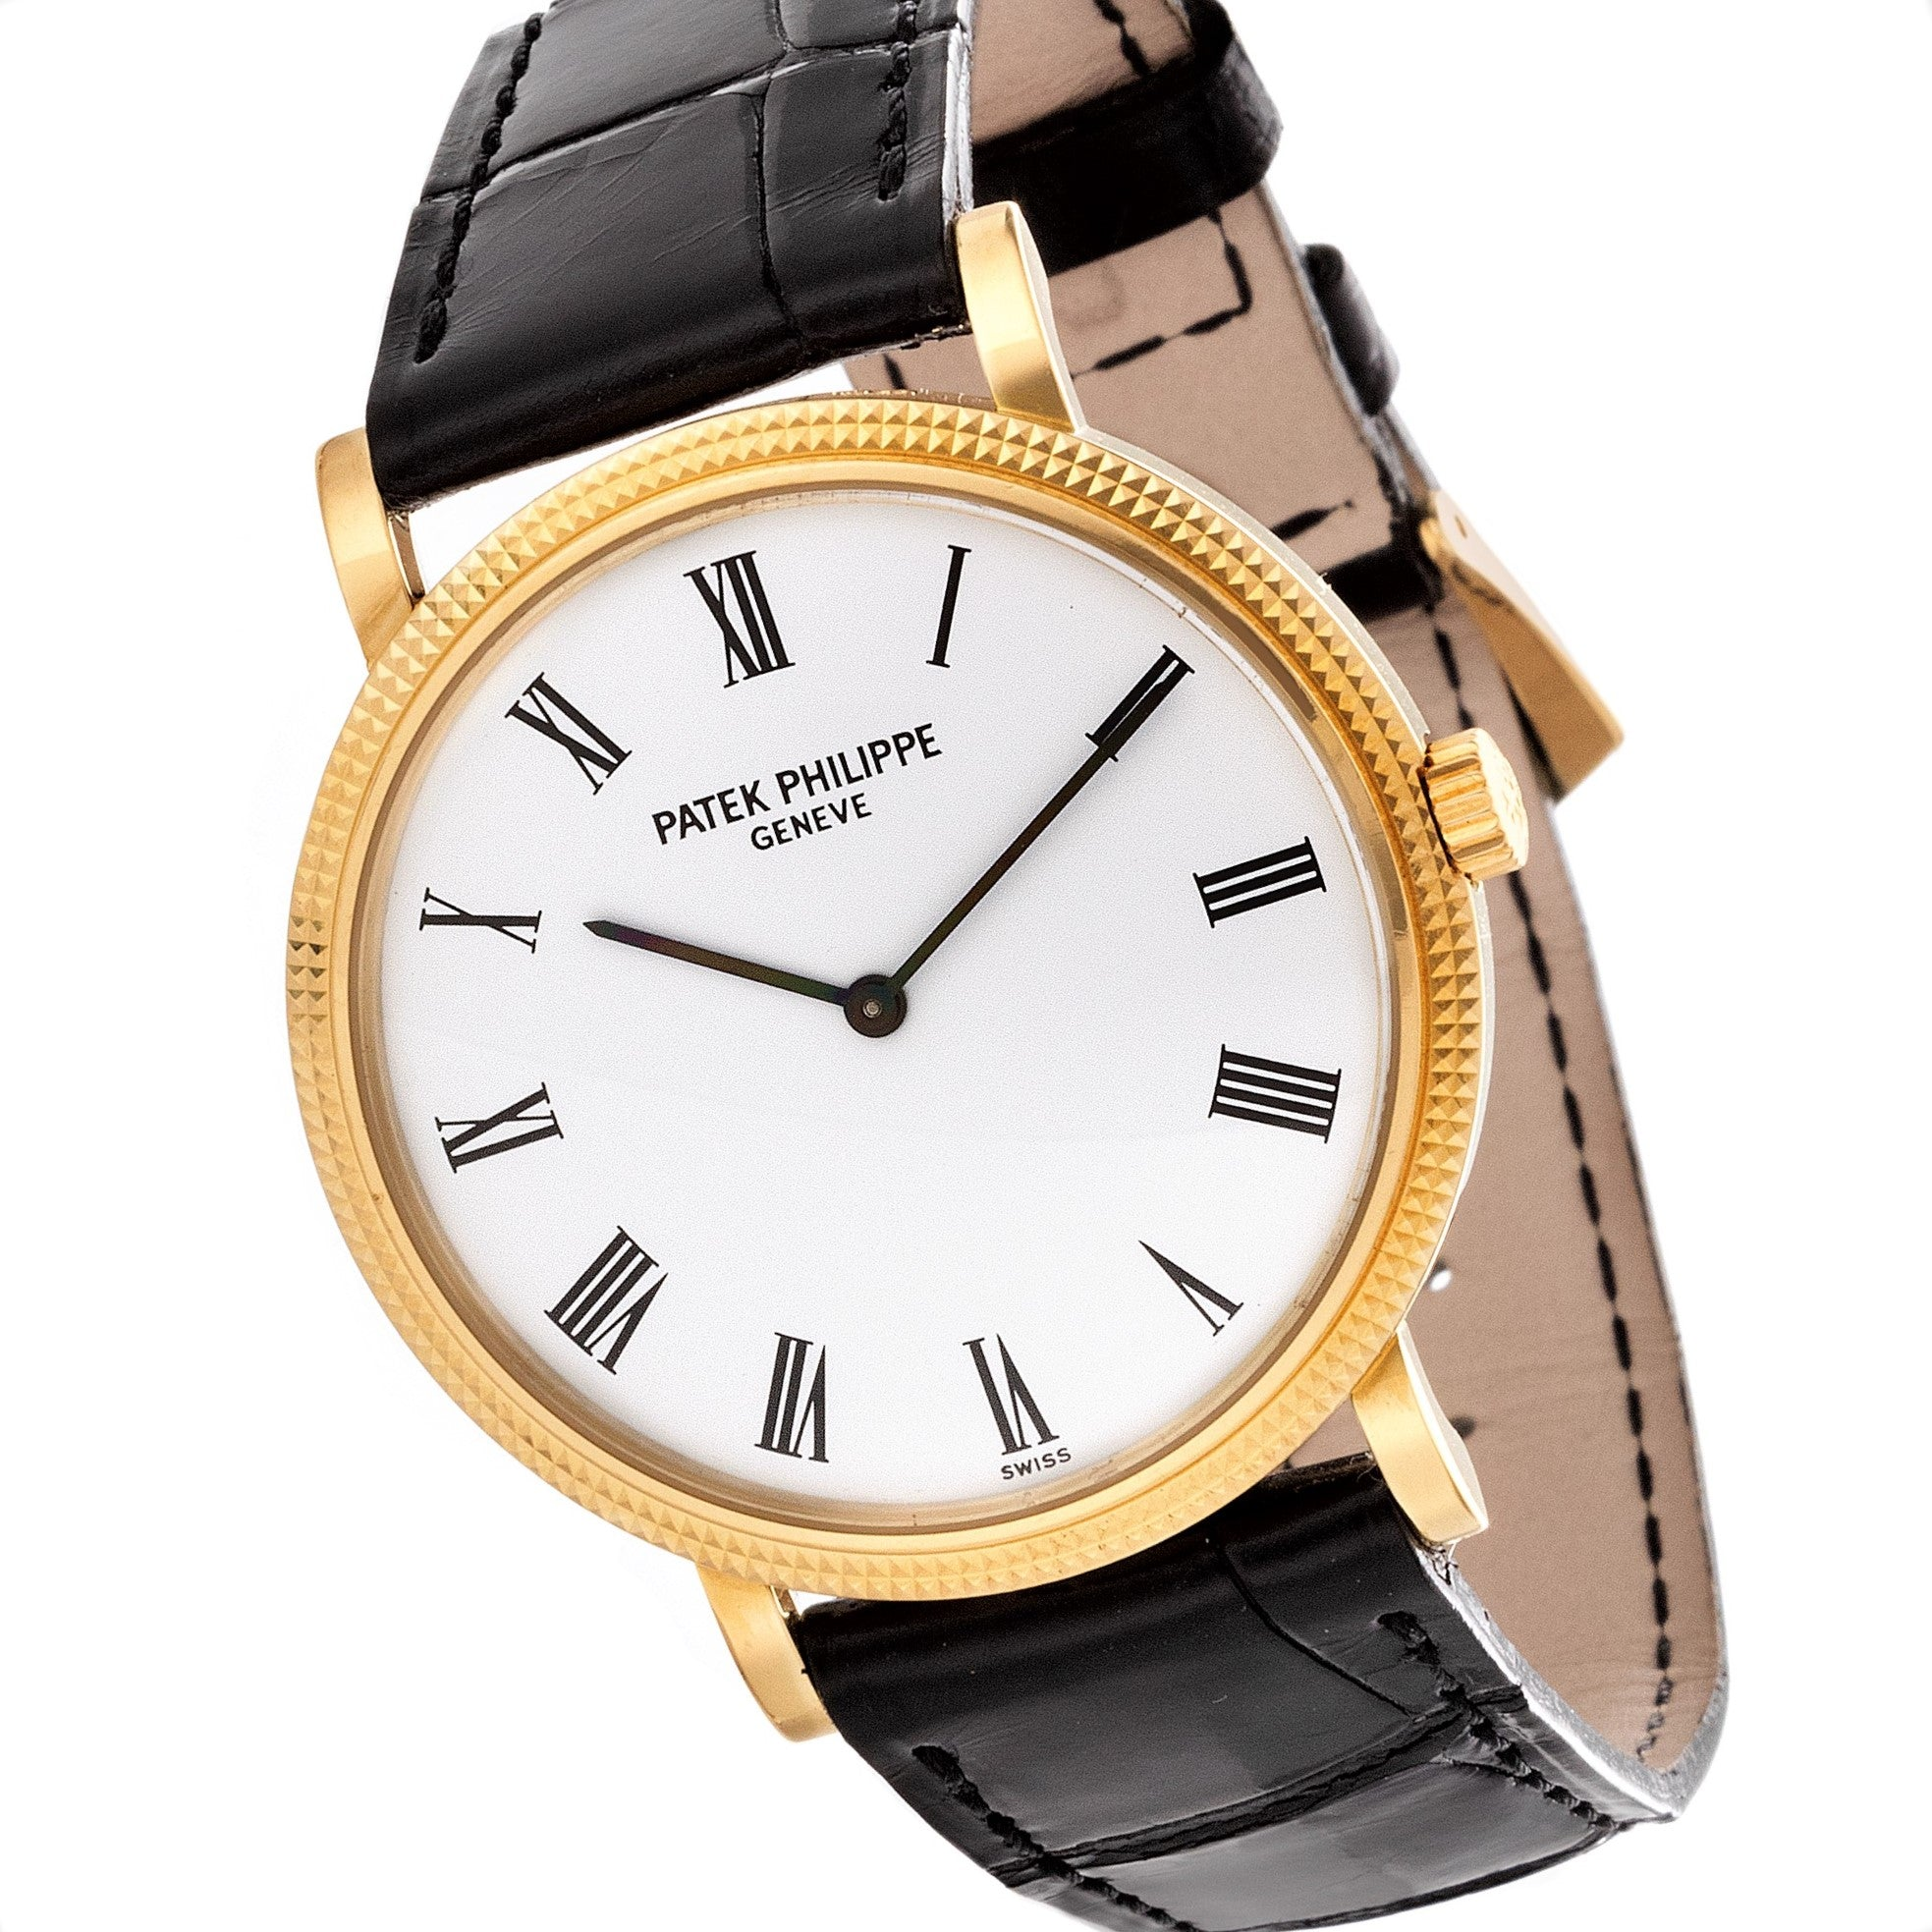 Patek Philippe 5120J Extra Thin Calatrava Watch